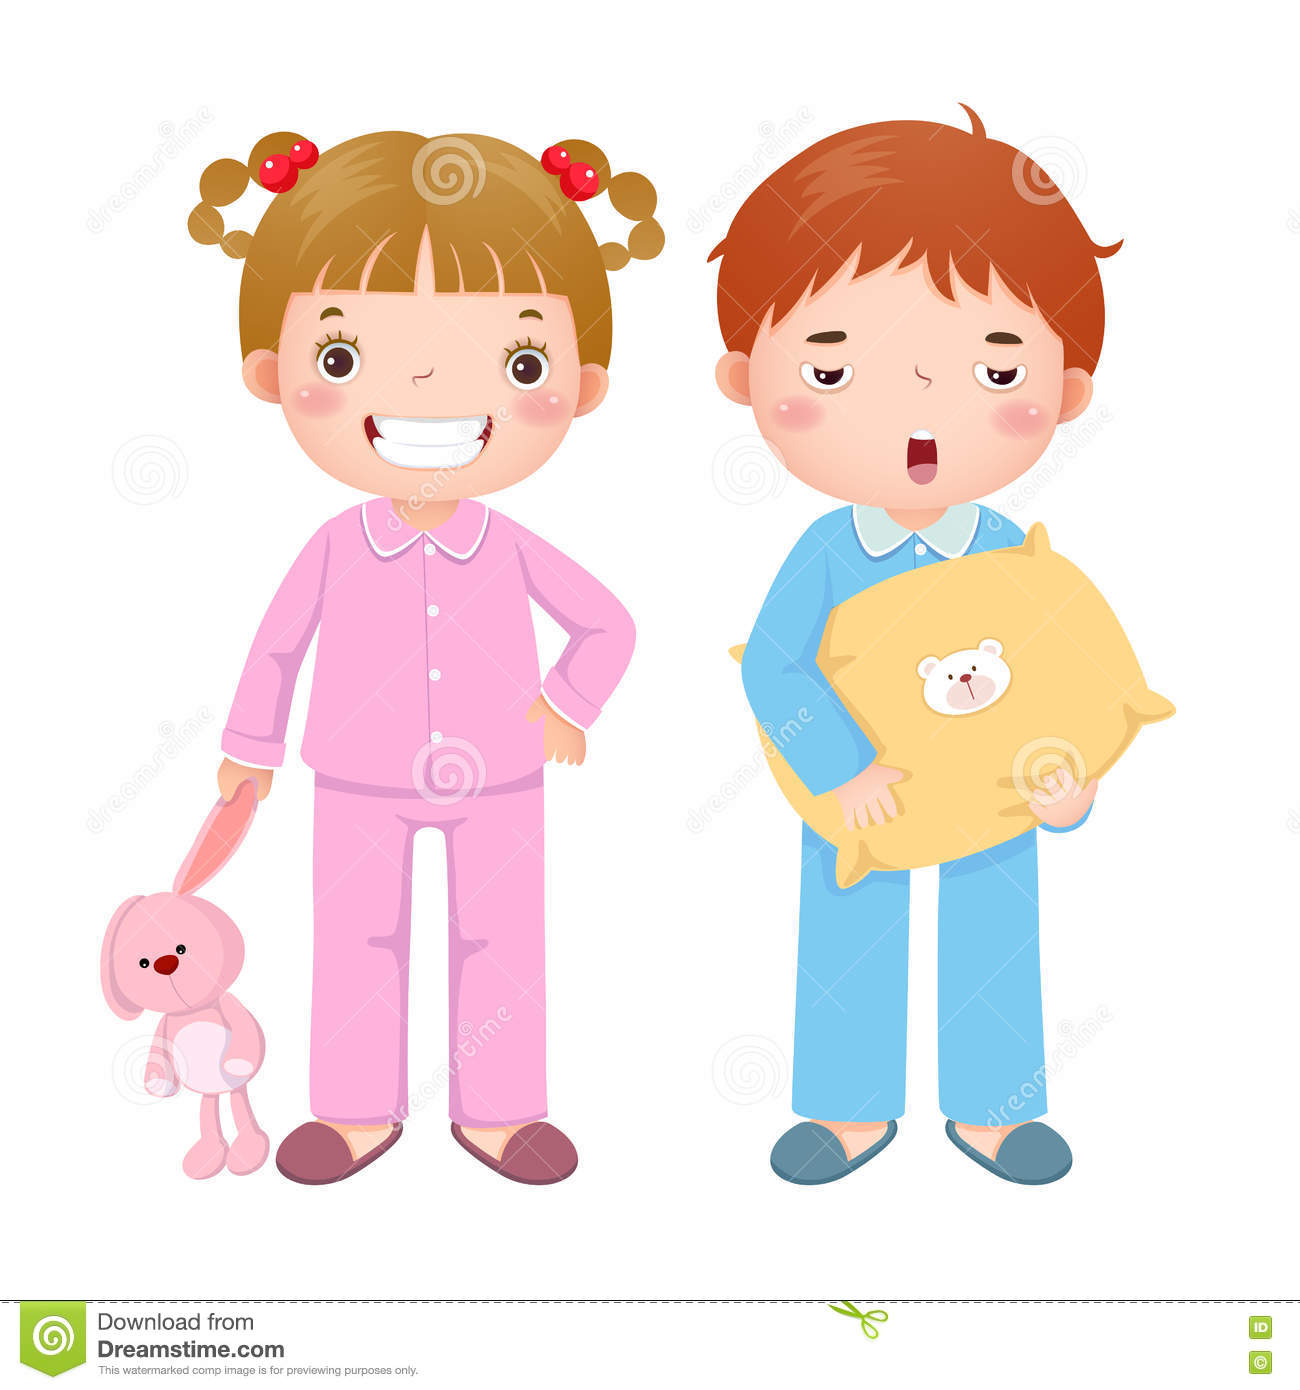 905554ffceebe Children wearing pajamas and getting ready to sleep. Vector illustration of  children wearing pajamas and